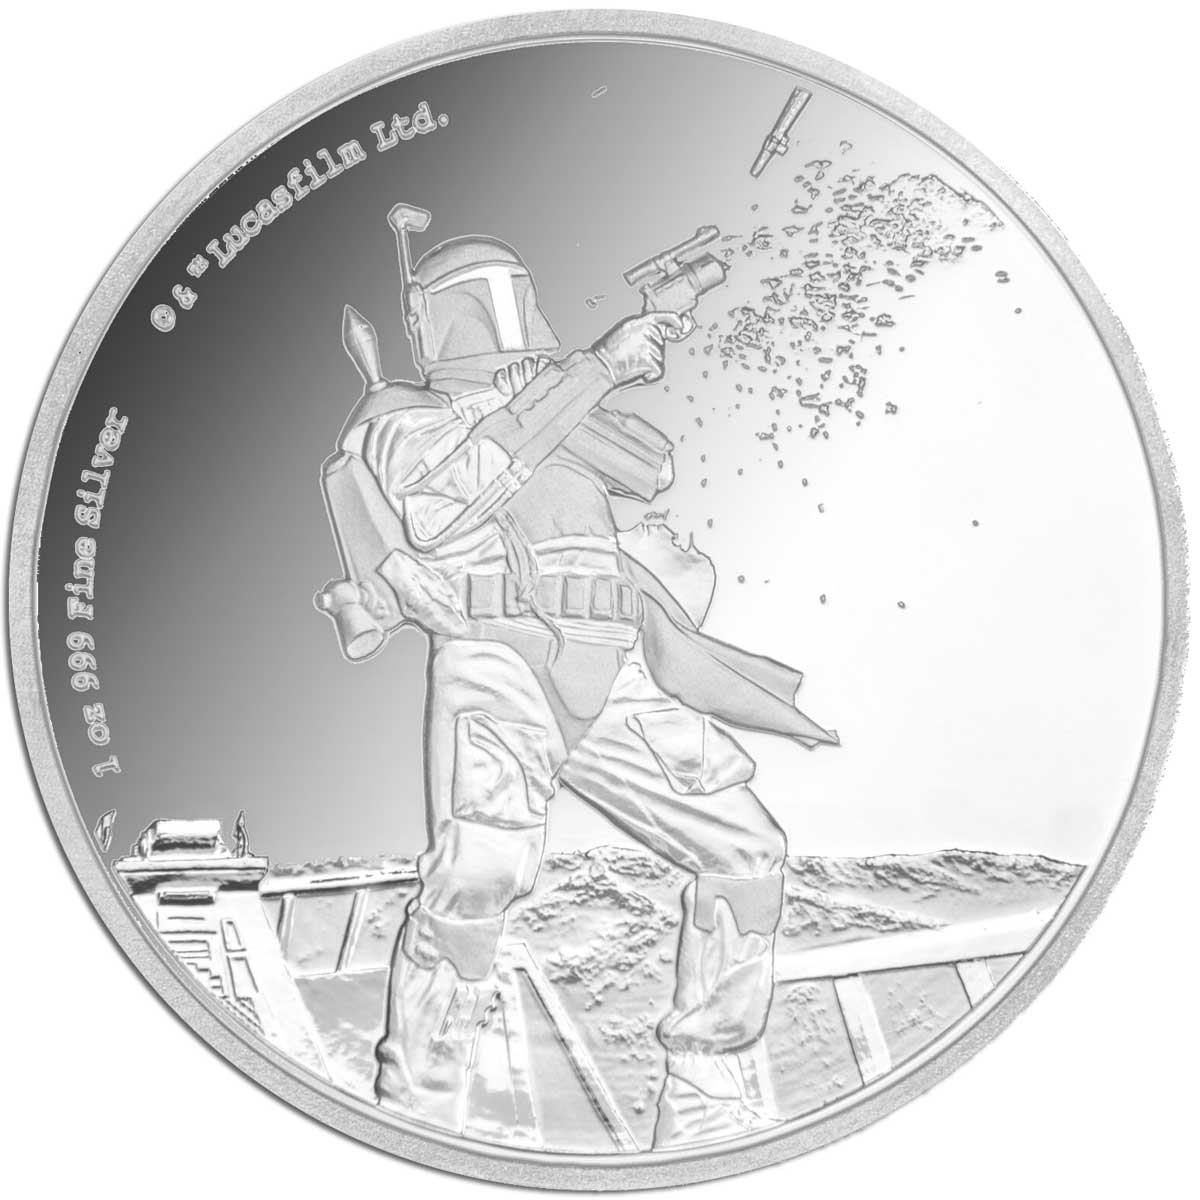 2017 Star Wars Classic Boba Fett 1oz Silver Proof Coin